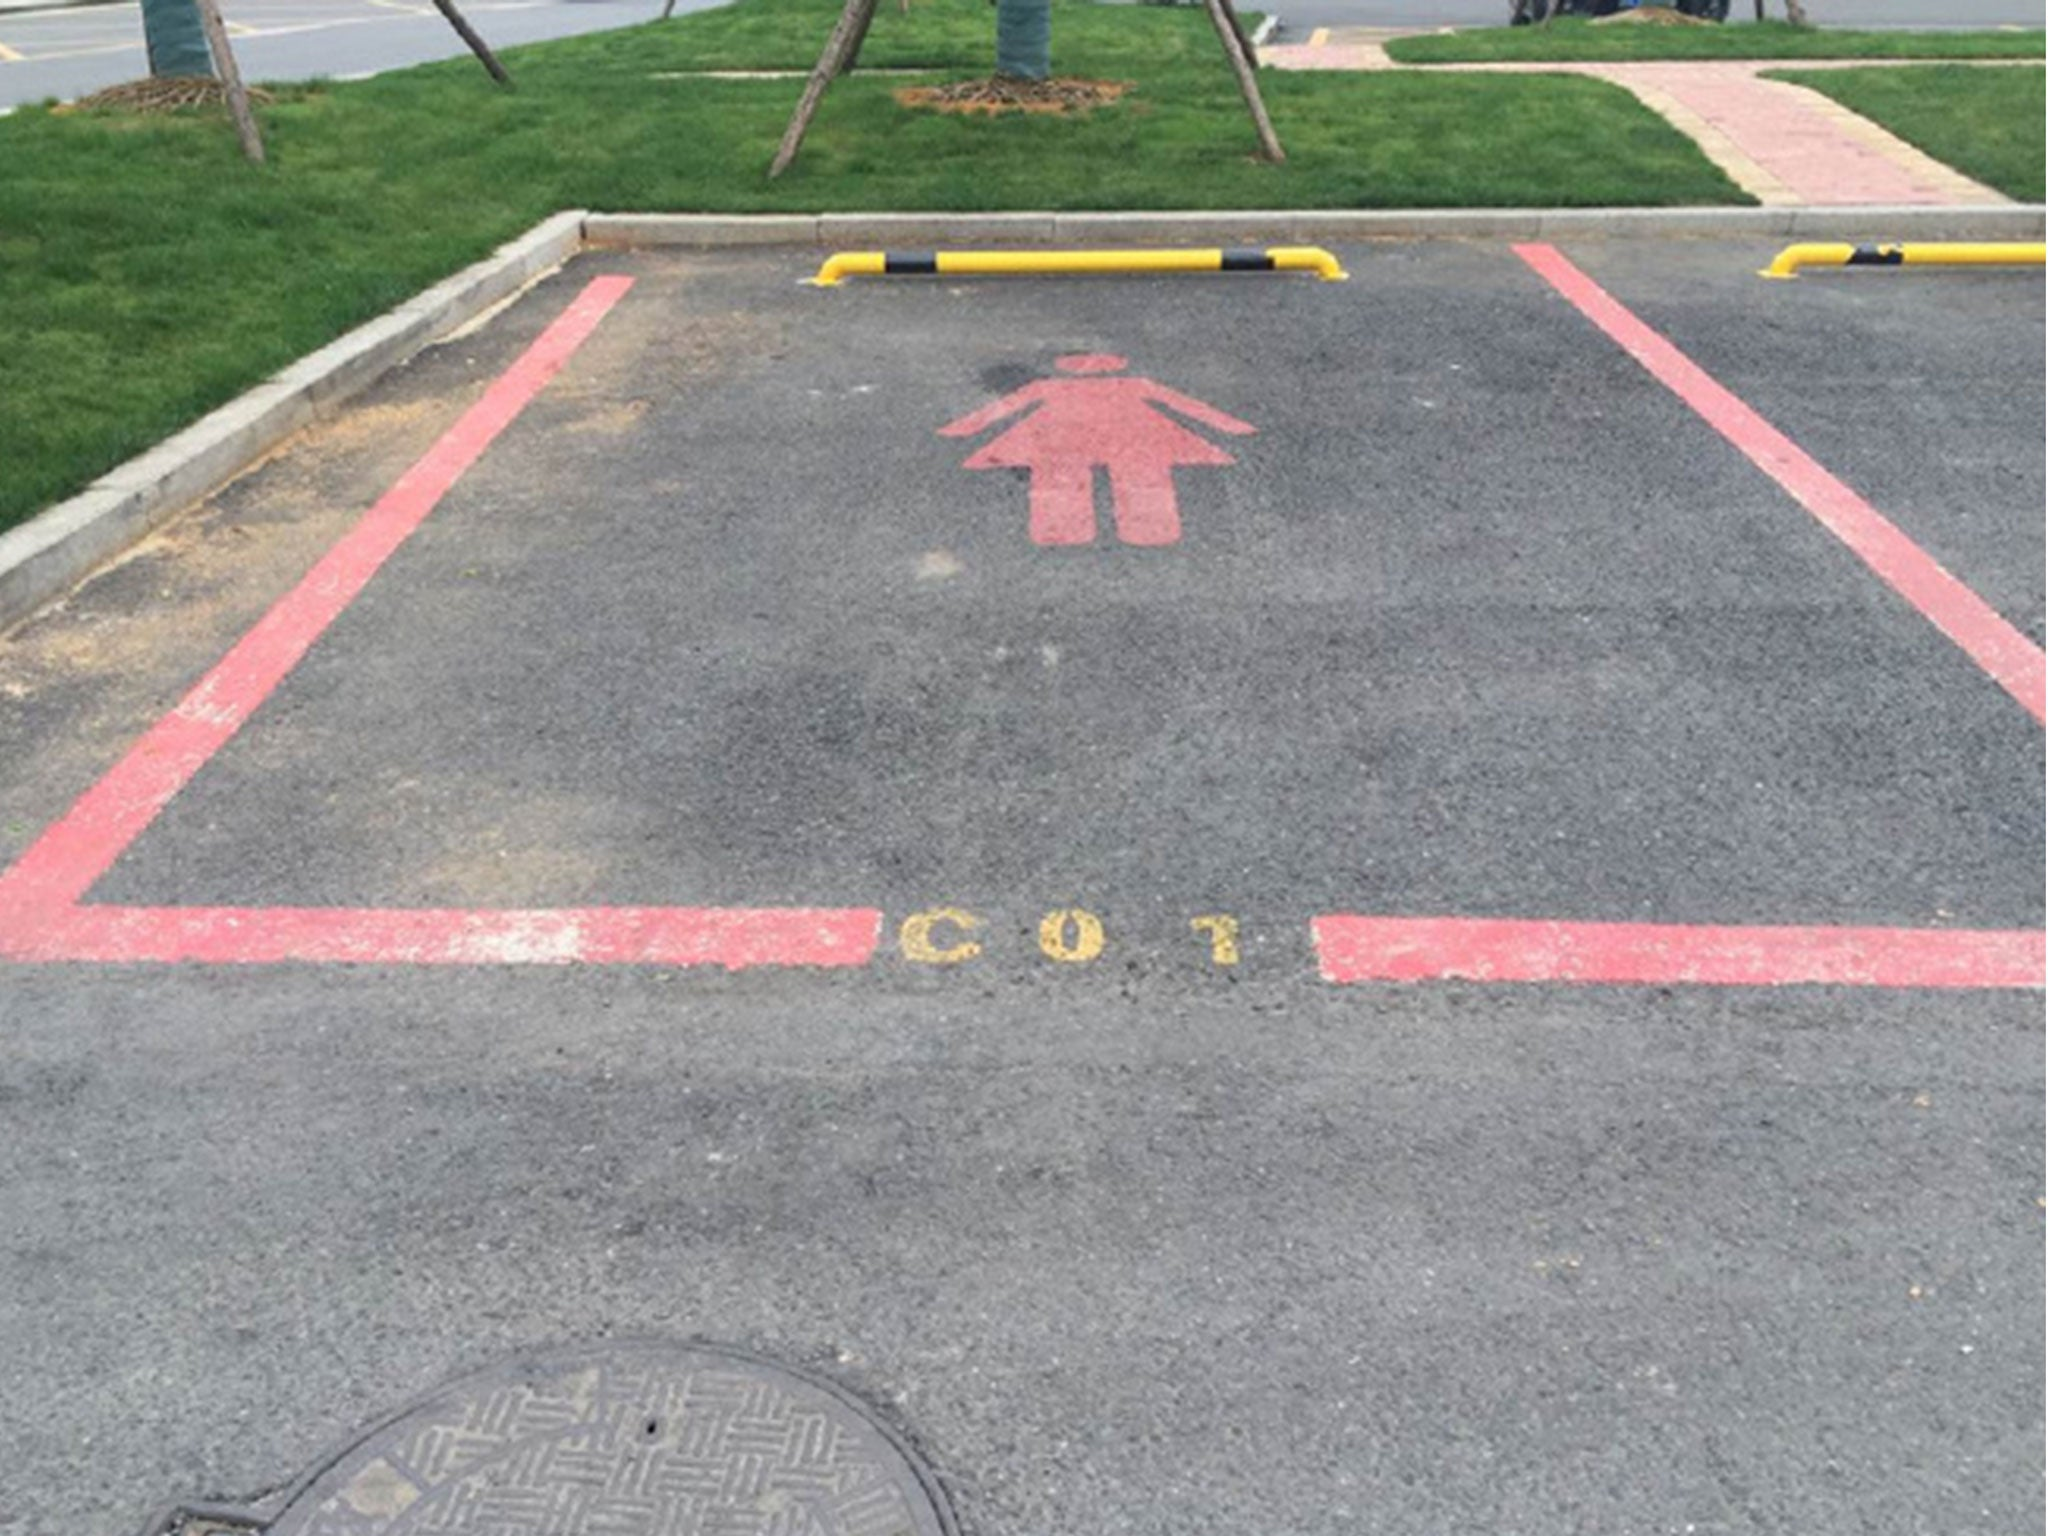 Extra-wide parking spaces 'for women who can't reverse' spark sexism row